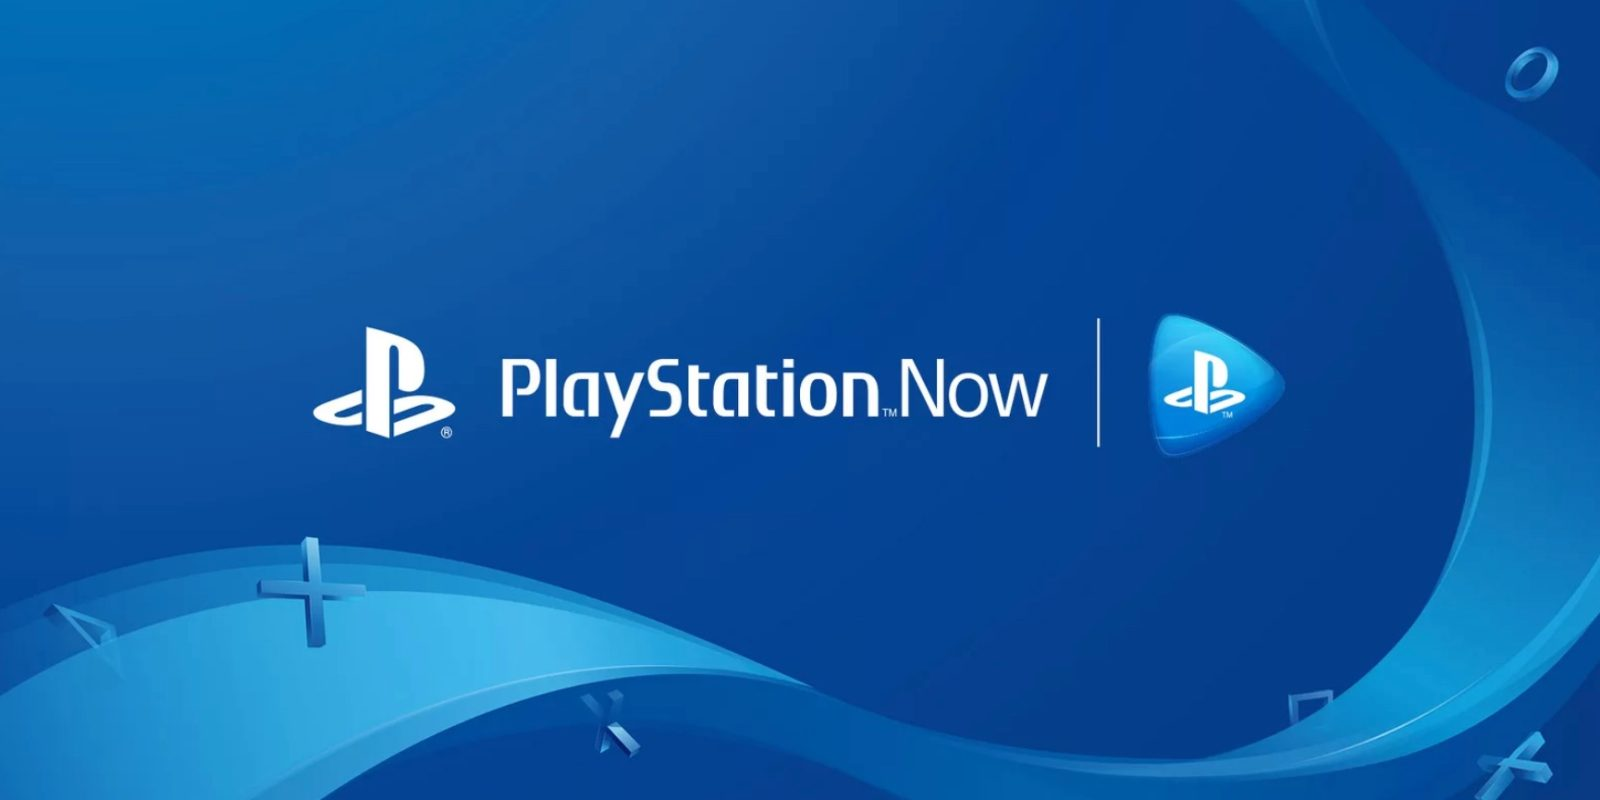 Sony drops the price on PlayStation Now by 50%, adds new blockbuster games